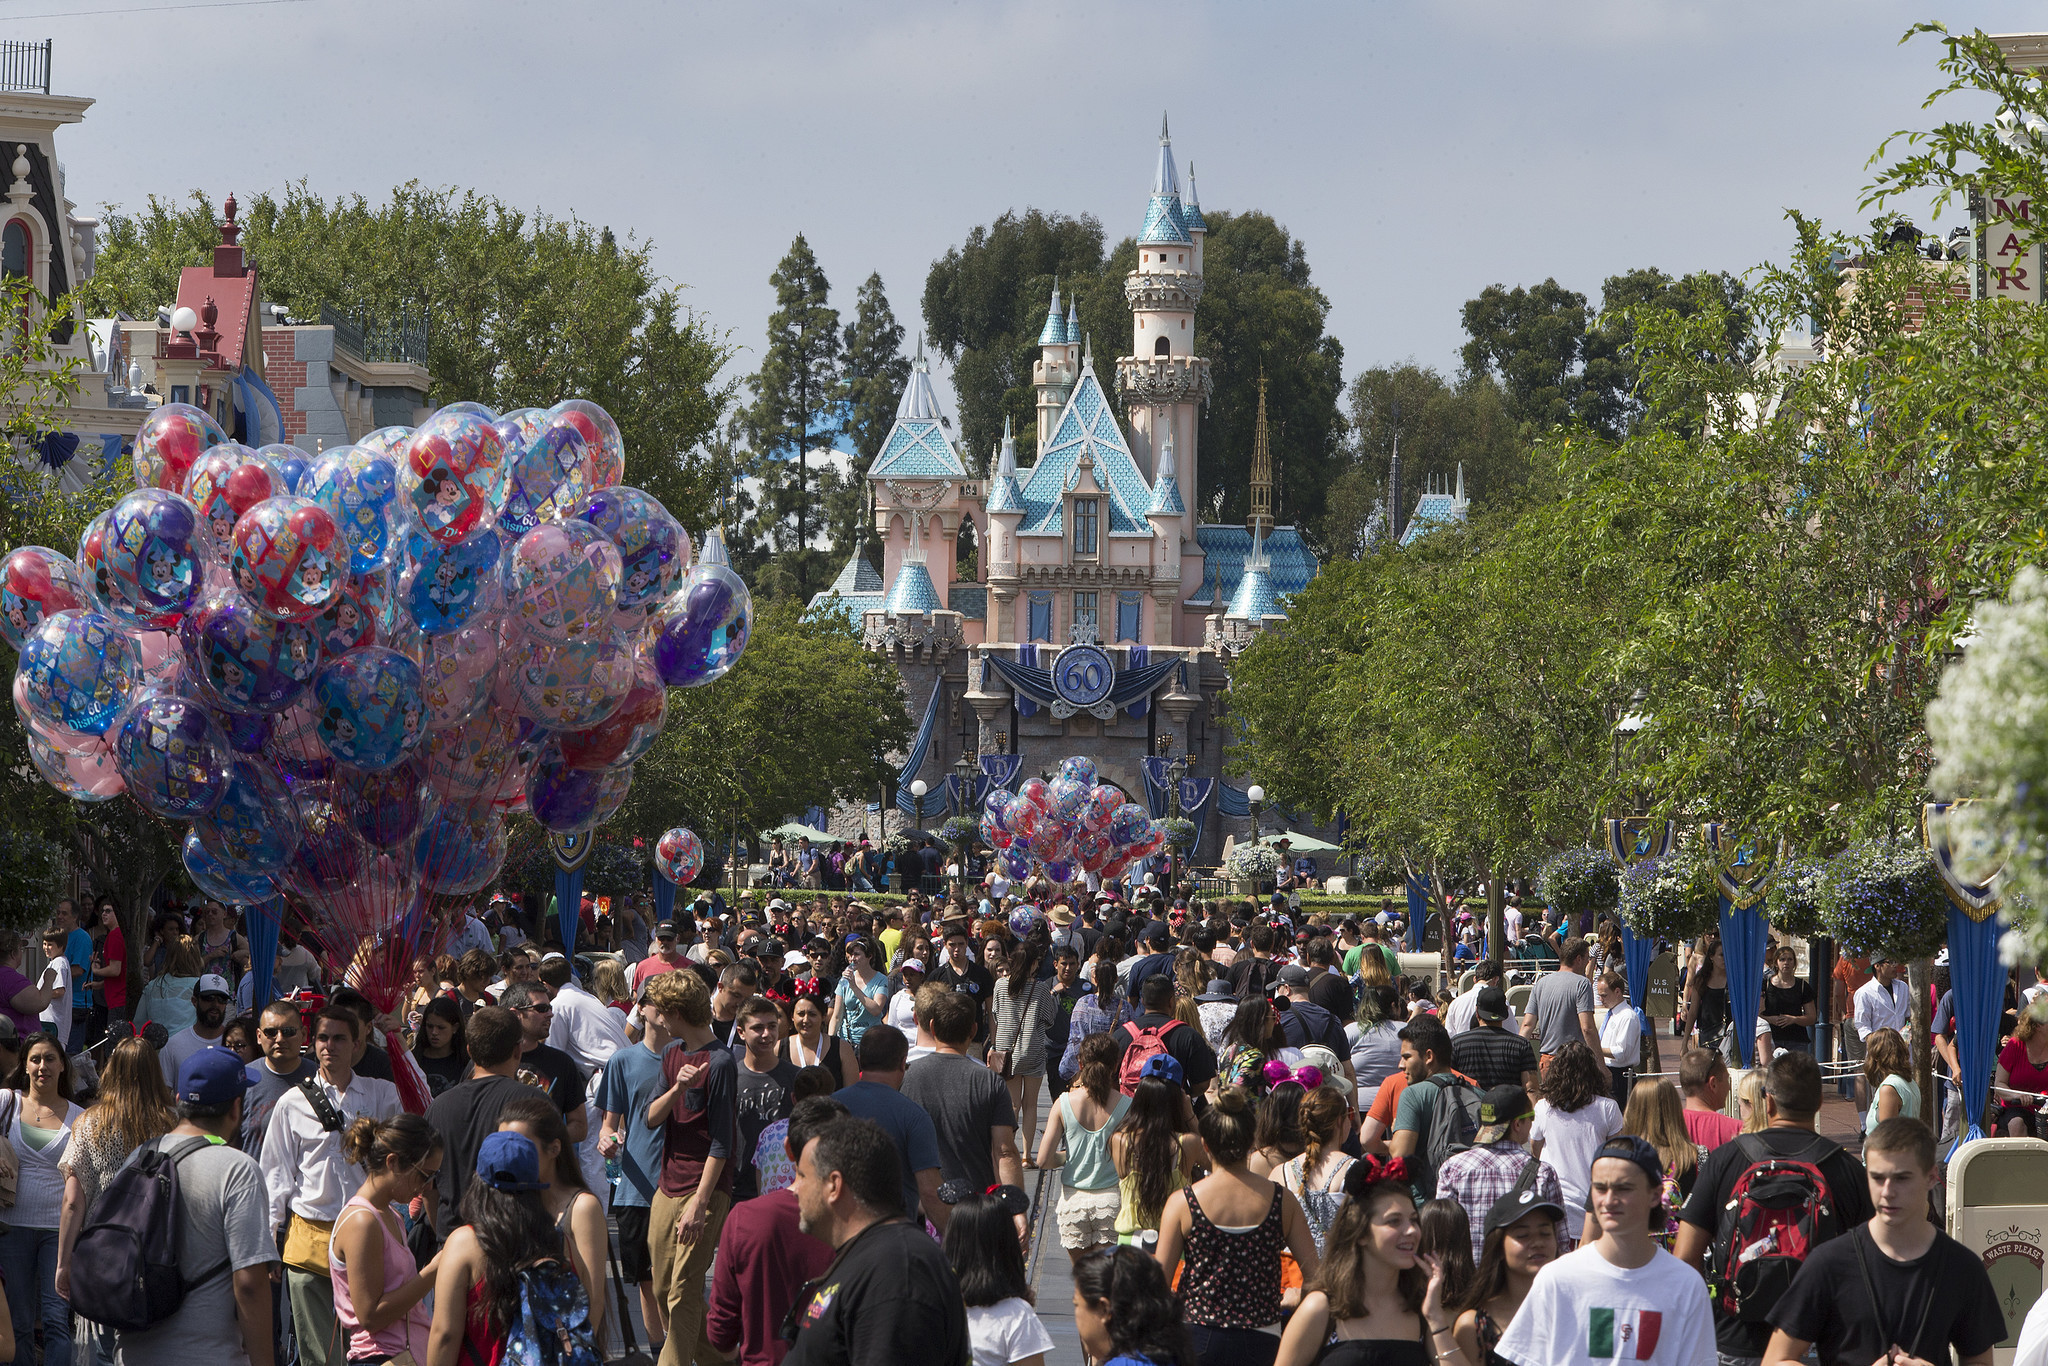 Ticket prices for Universal Studios, Disneyland and other theme parks are rising fast